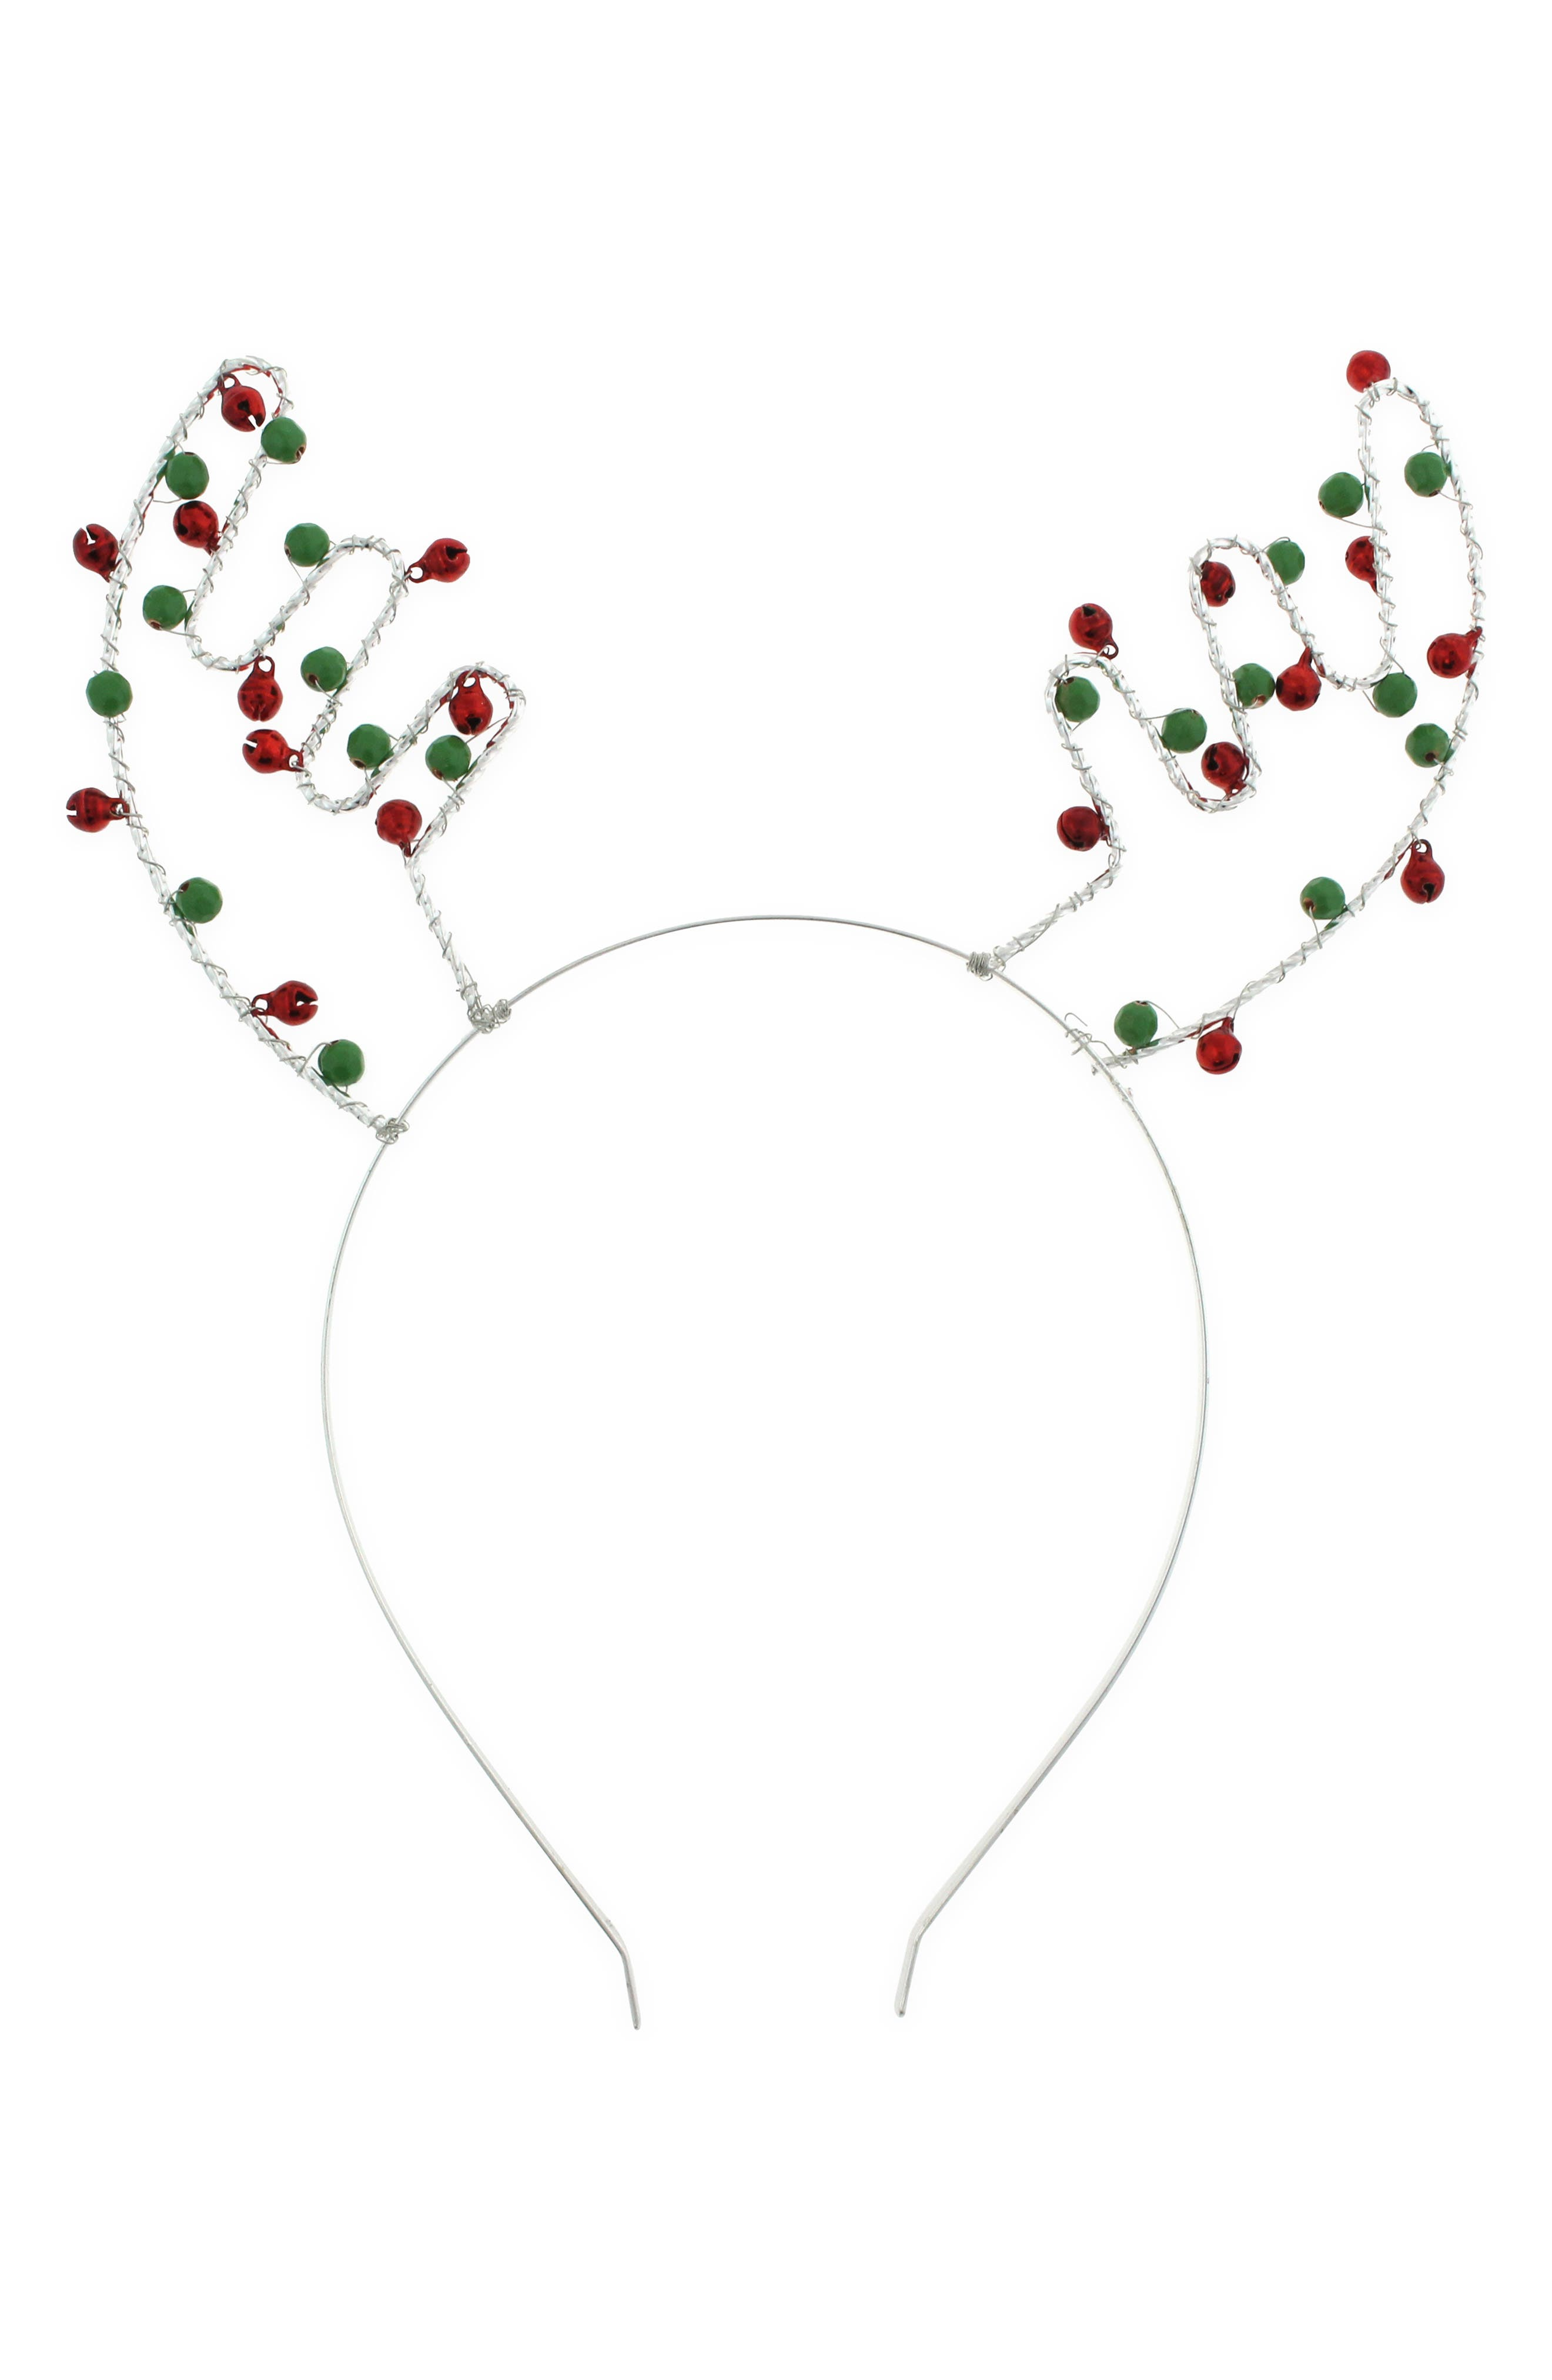 Jingle Bell Antler Headband,                             Main thumbnail 1, color,                             602